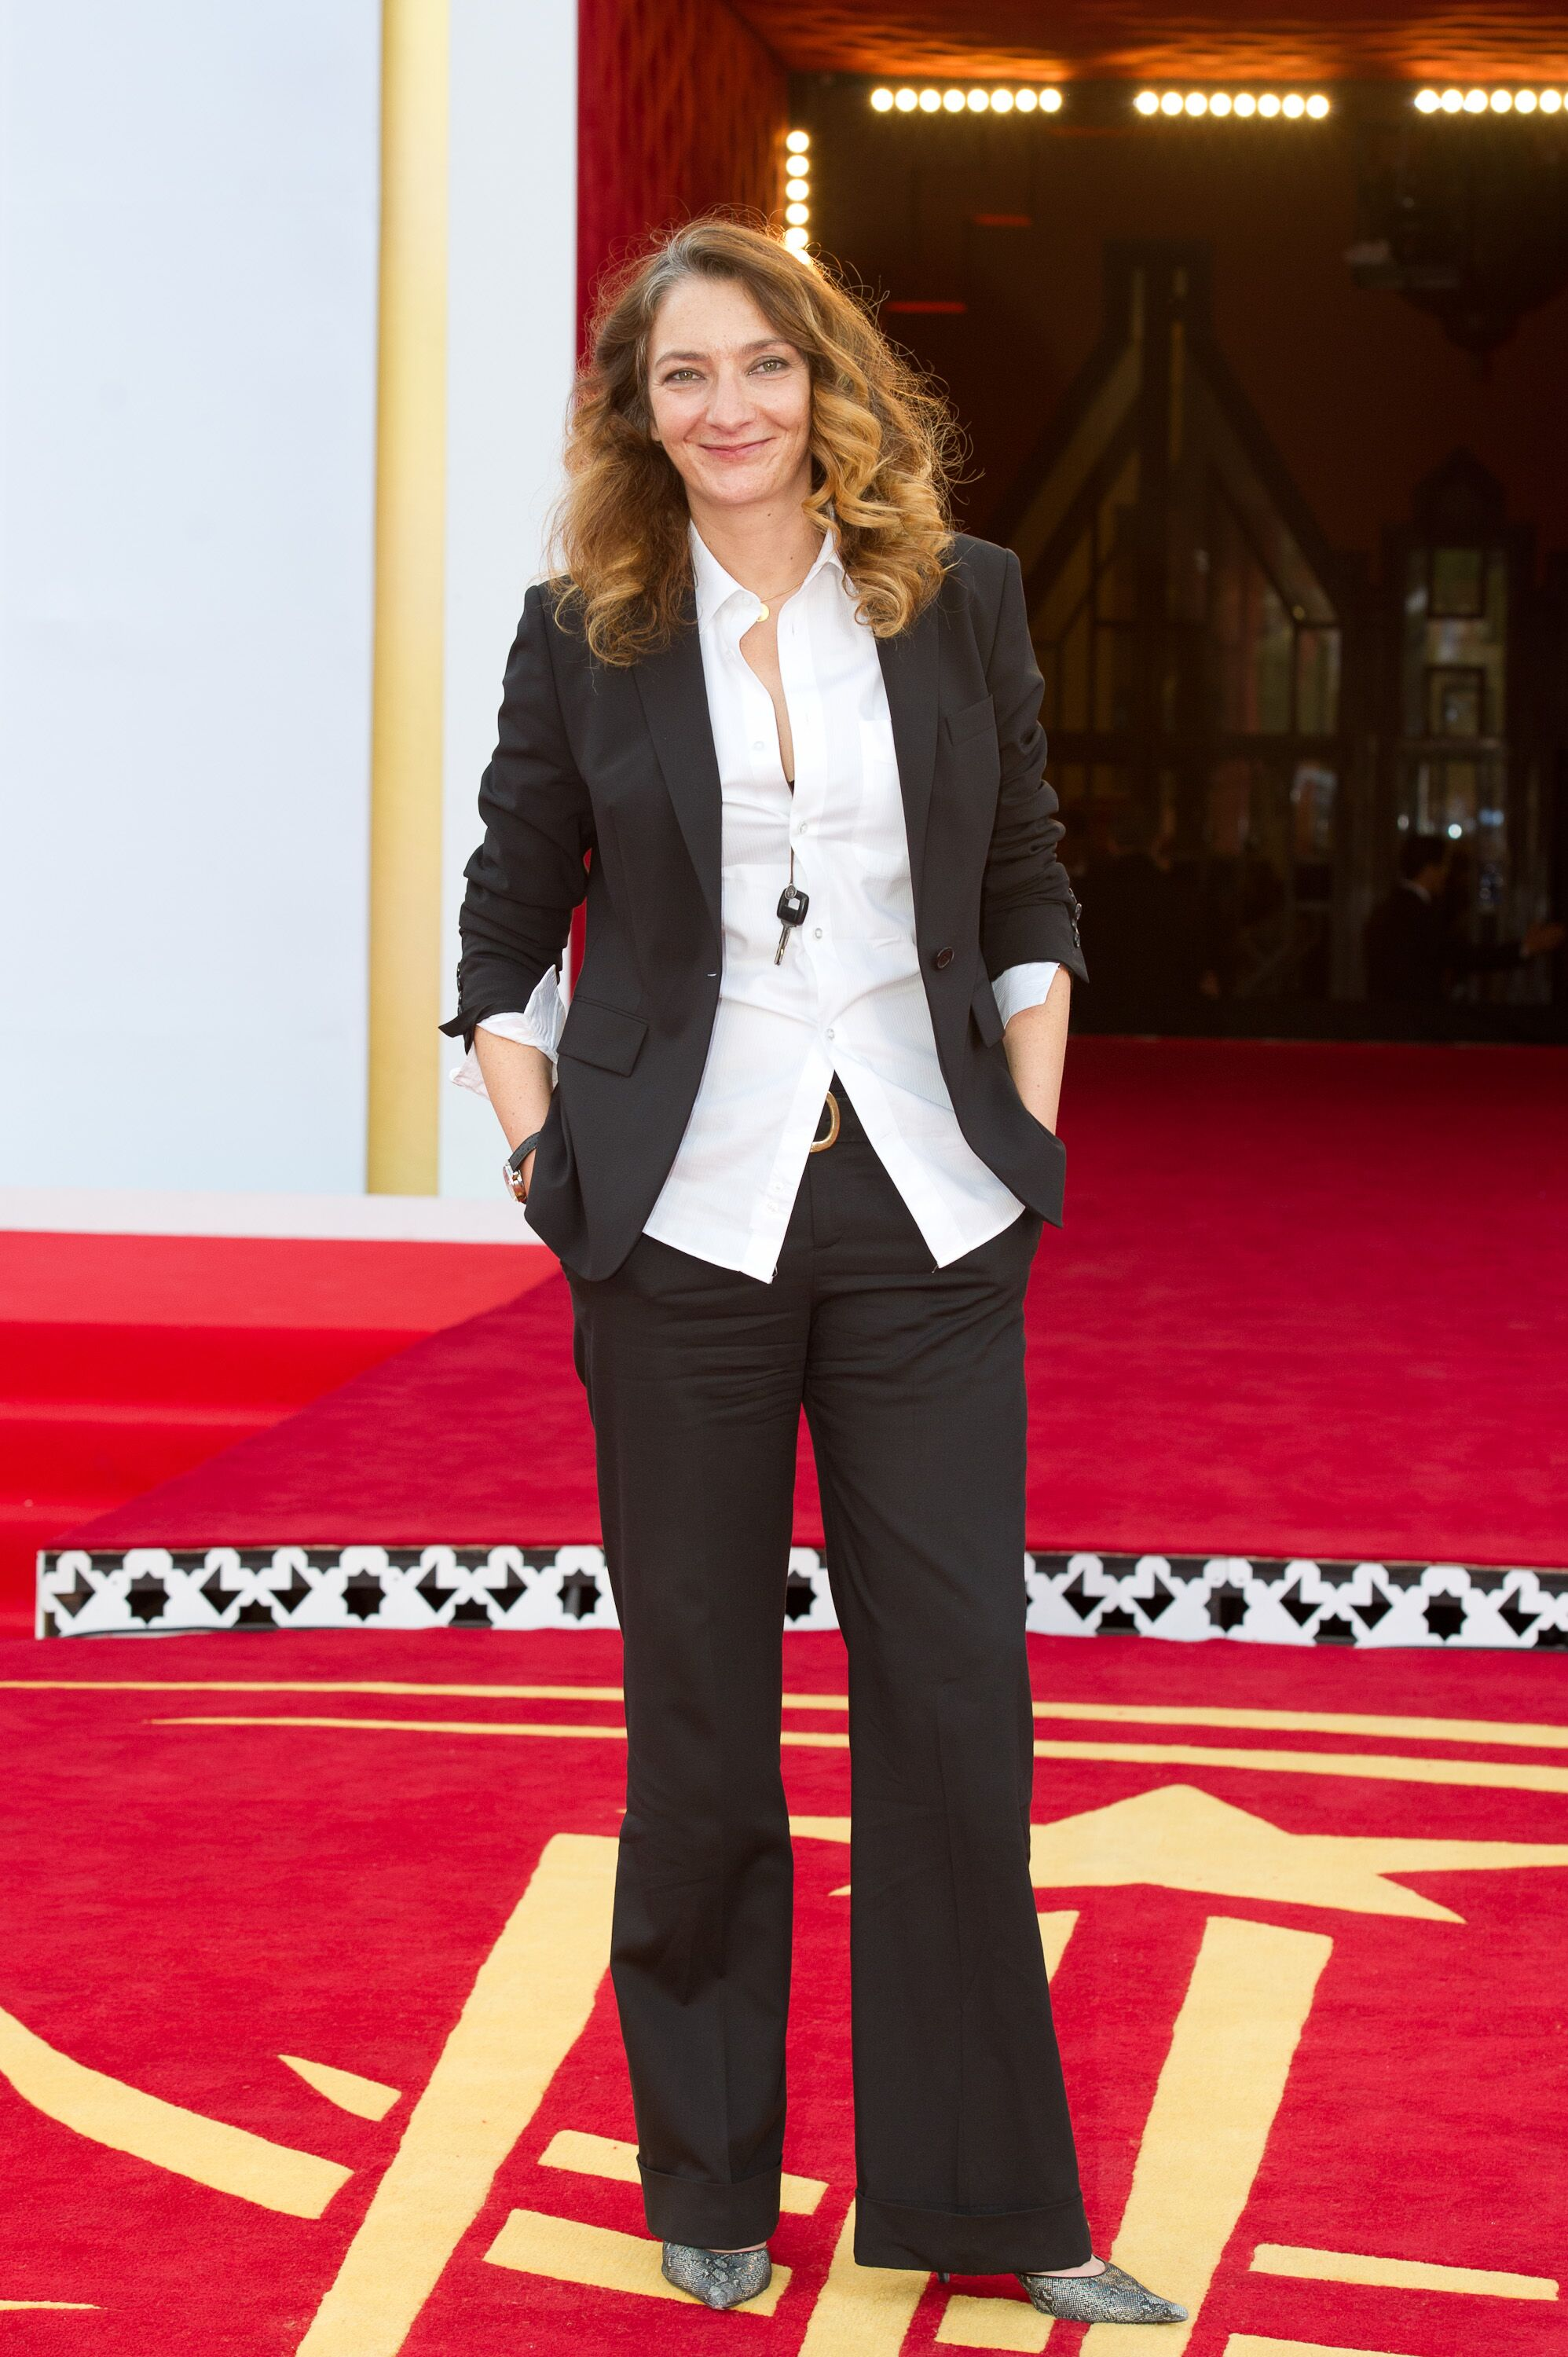 Corinne Masiero sur le tapis rouge. | Photo : GettyImage